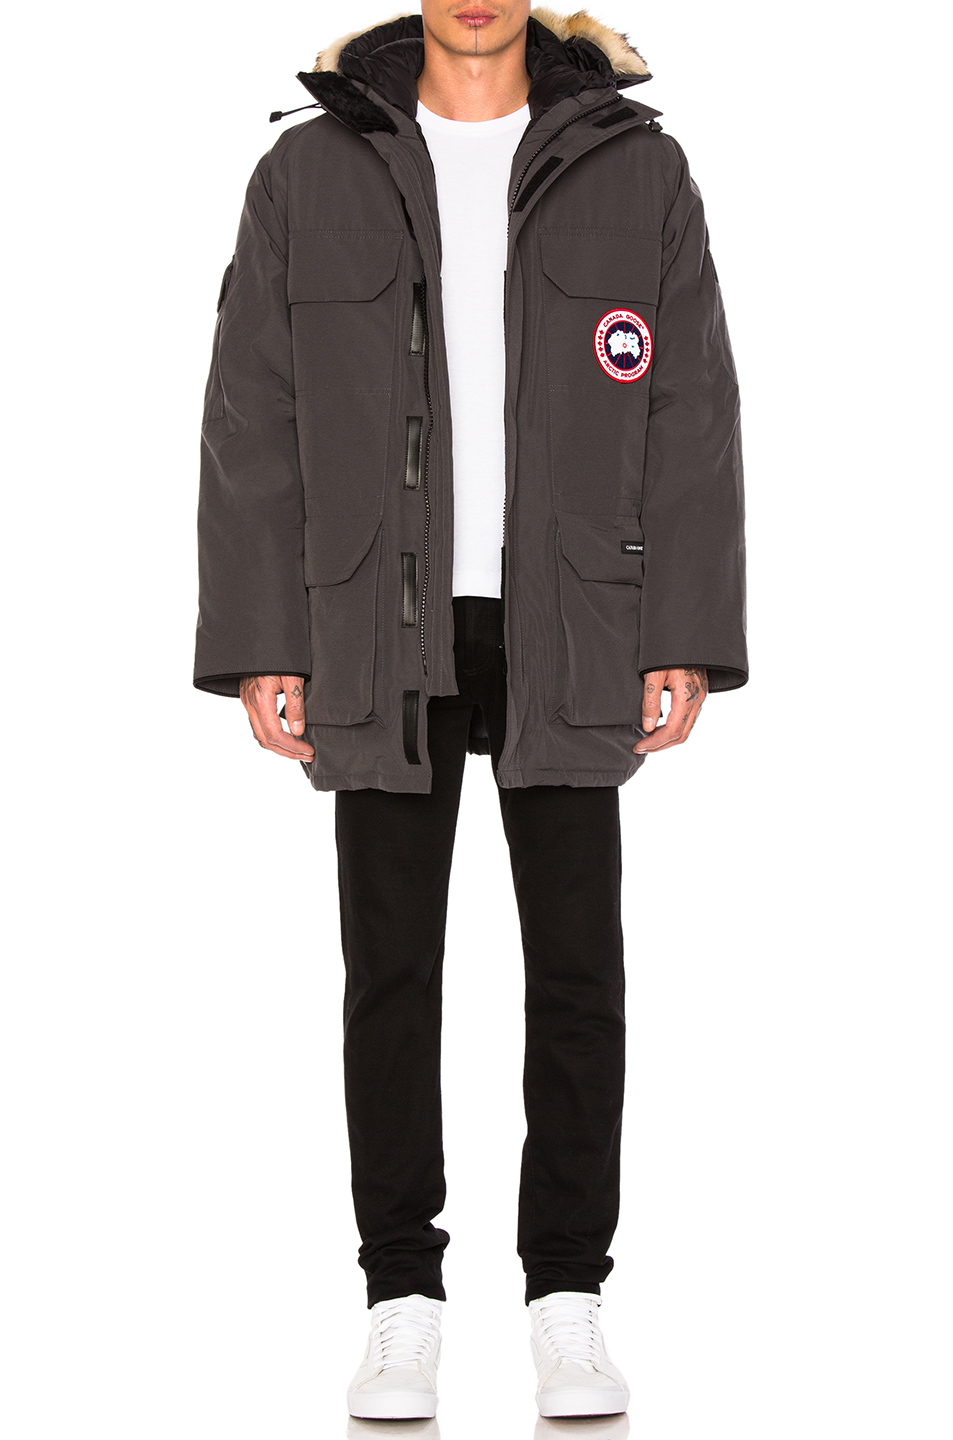 Photo of Canada Goose Expedition Poly-Blend Parka in Gray - shop Canada Goose menswear